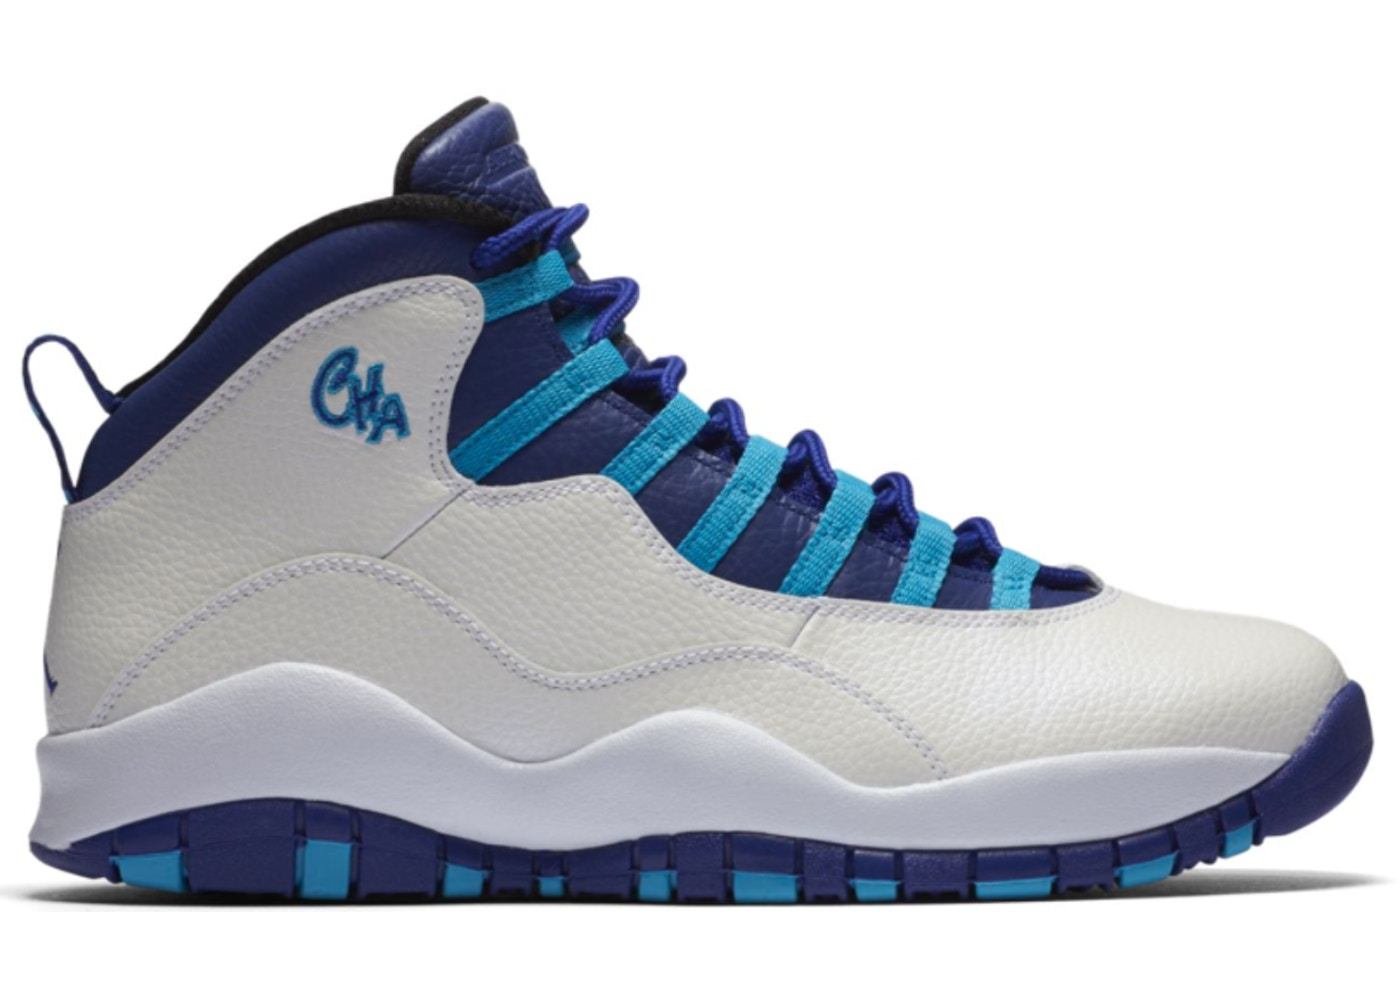 online store 9cd3b dac60 Buy Air Jordan 10 Shoes & Deadstock Sneakers